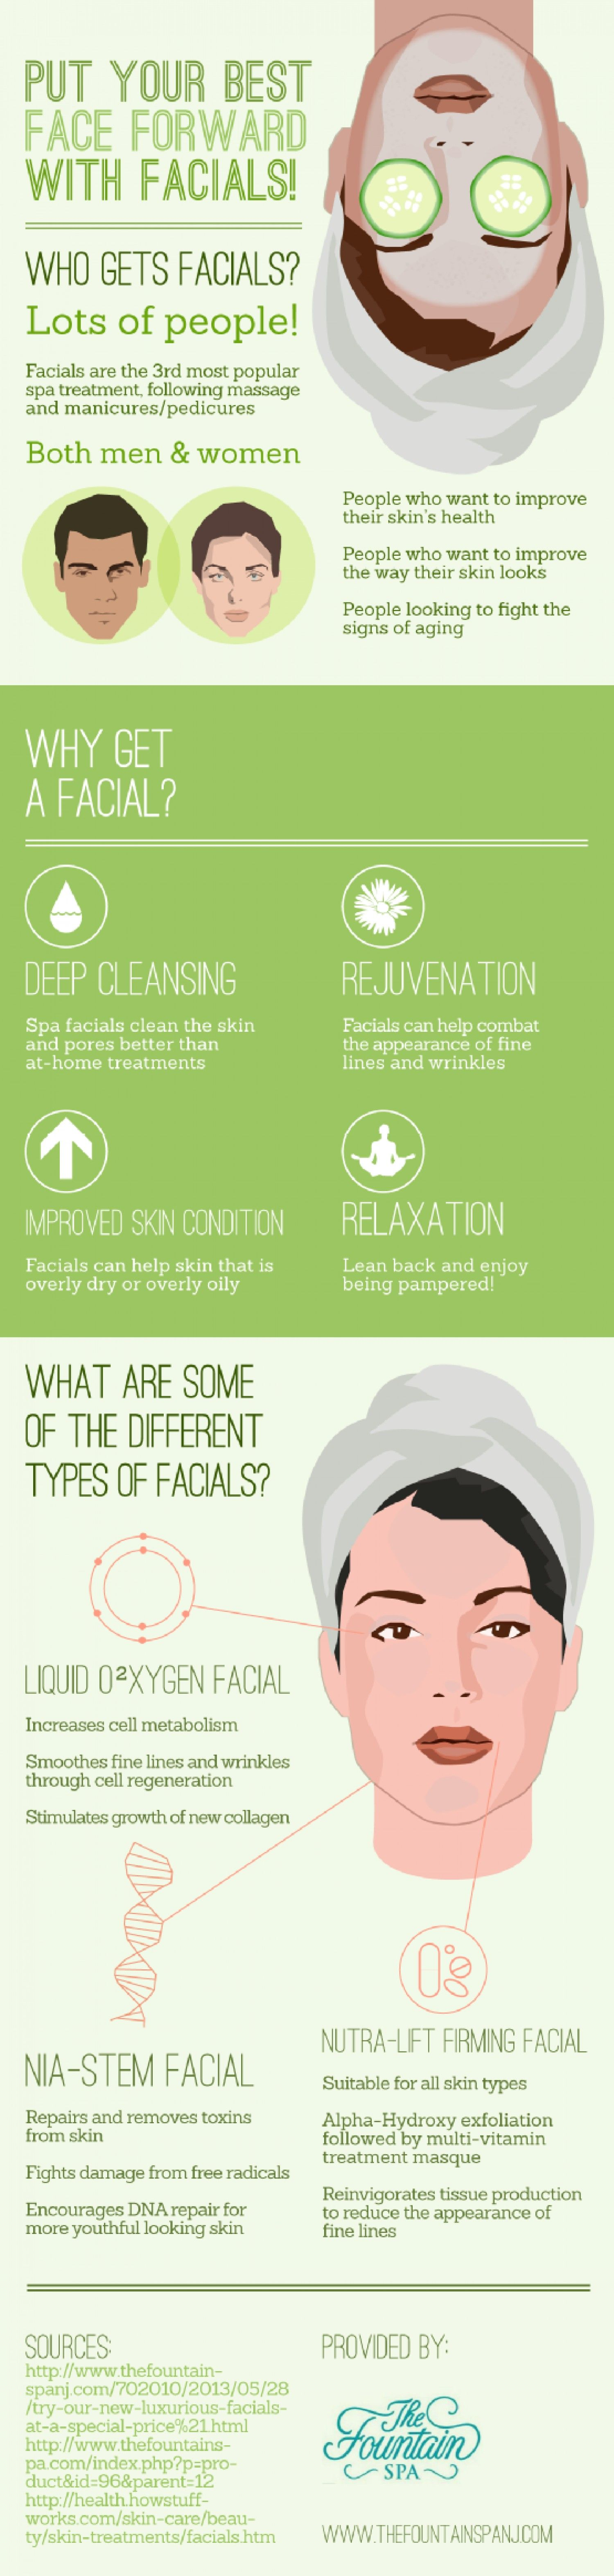 Put Your Best Face Forward With Facials Visual Ly Best Face Products Facial Skin Care Treatments